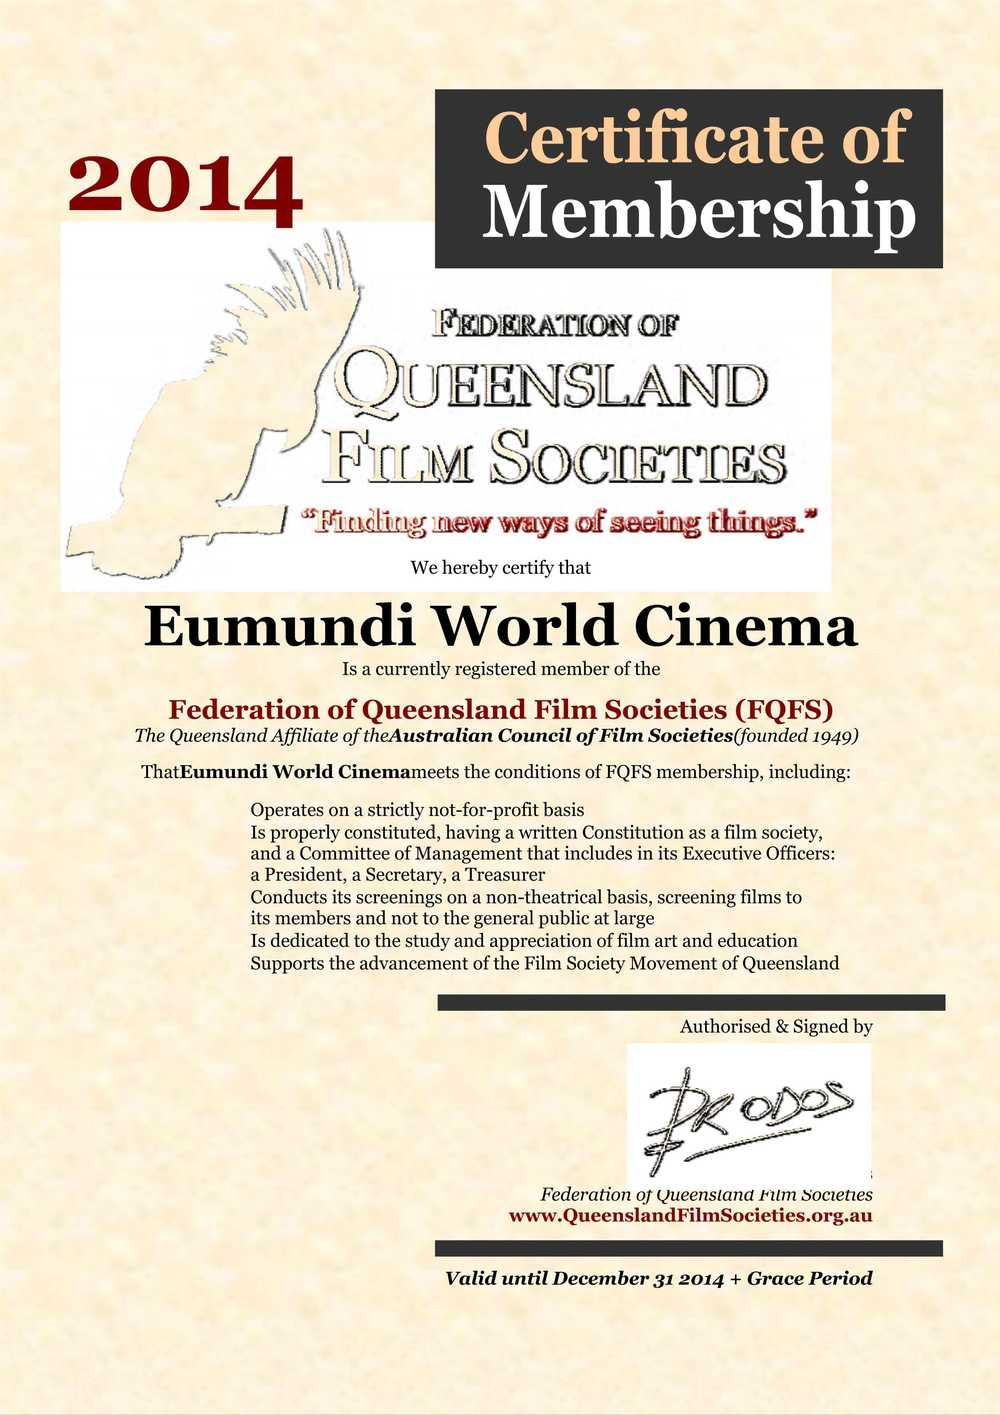 Eumundi World Cinema - FQFS 2014 Membership Certificate.jpg